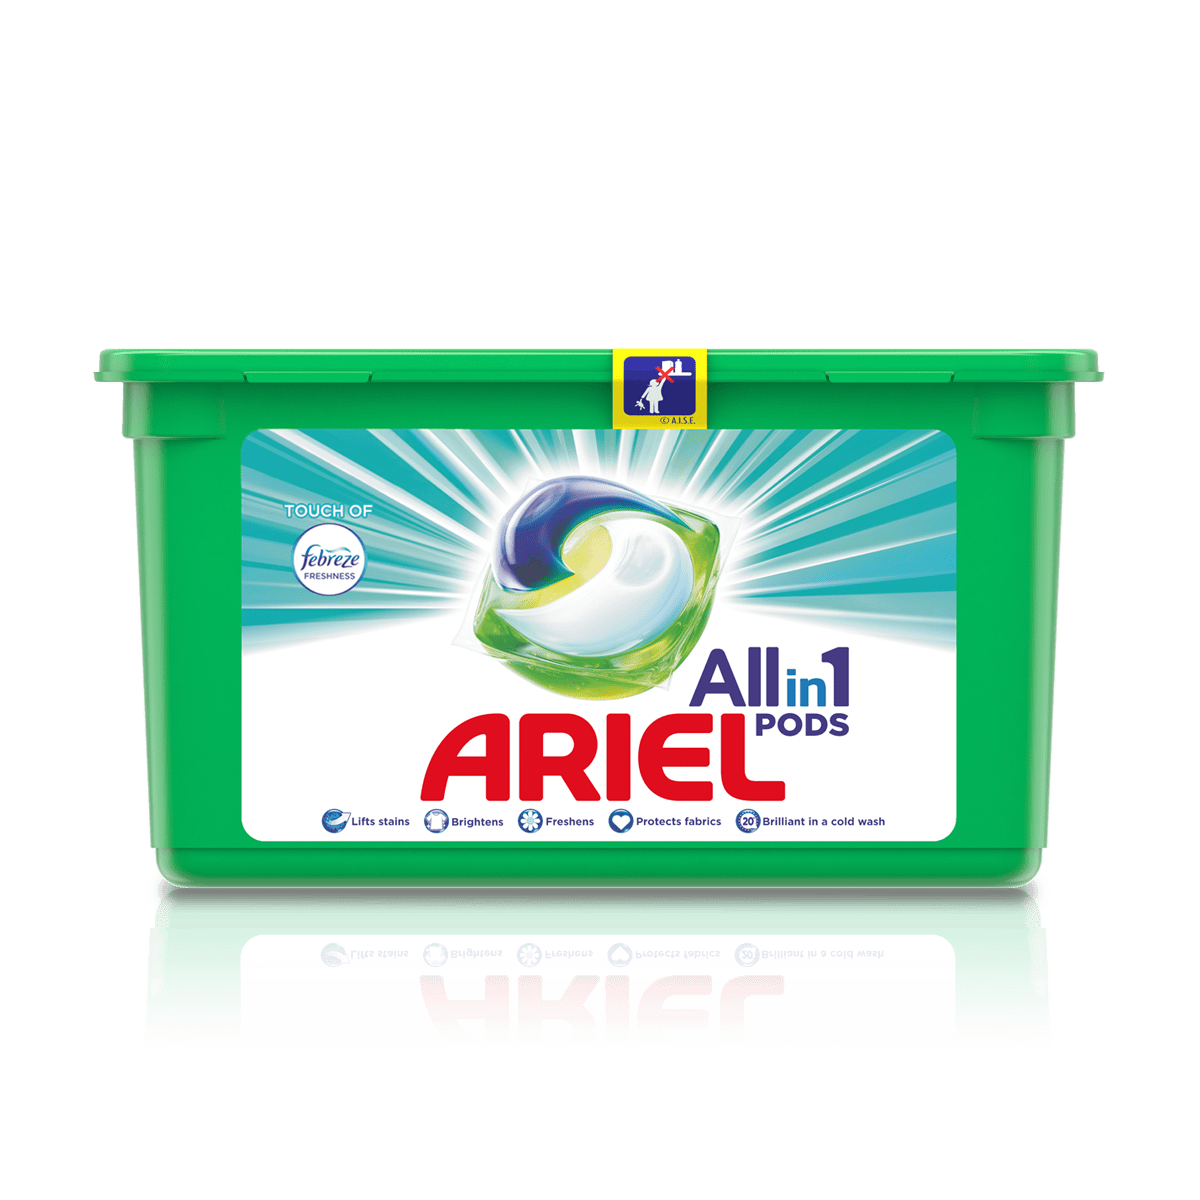 Ariel All-in-1 PODS with a Touch of Febreze